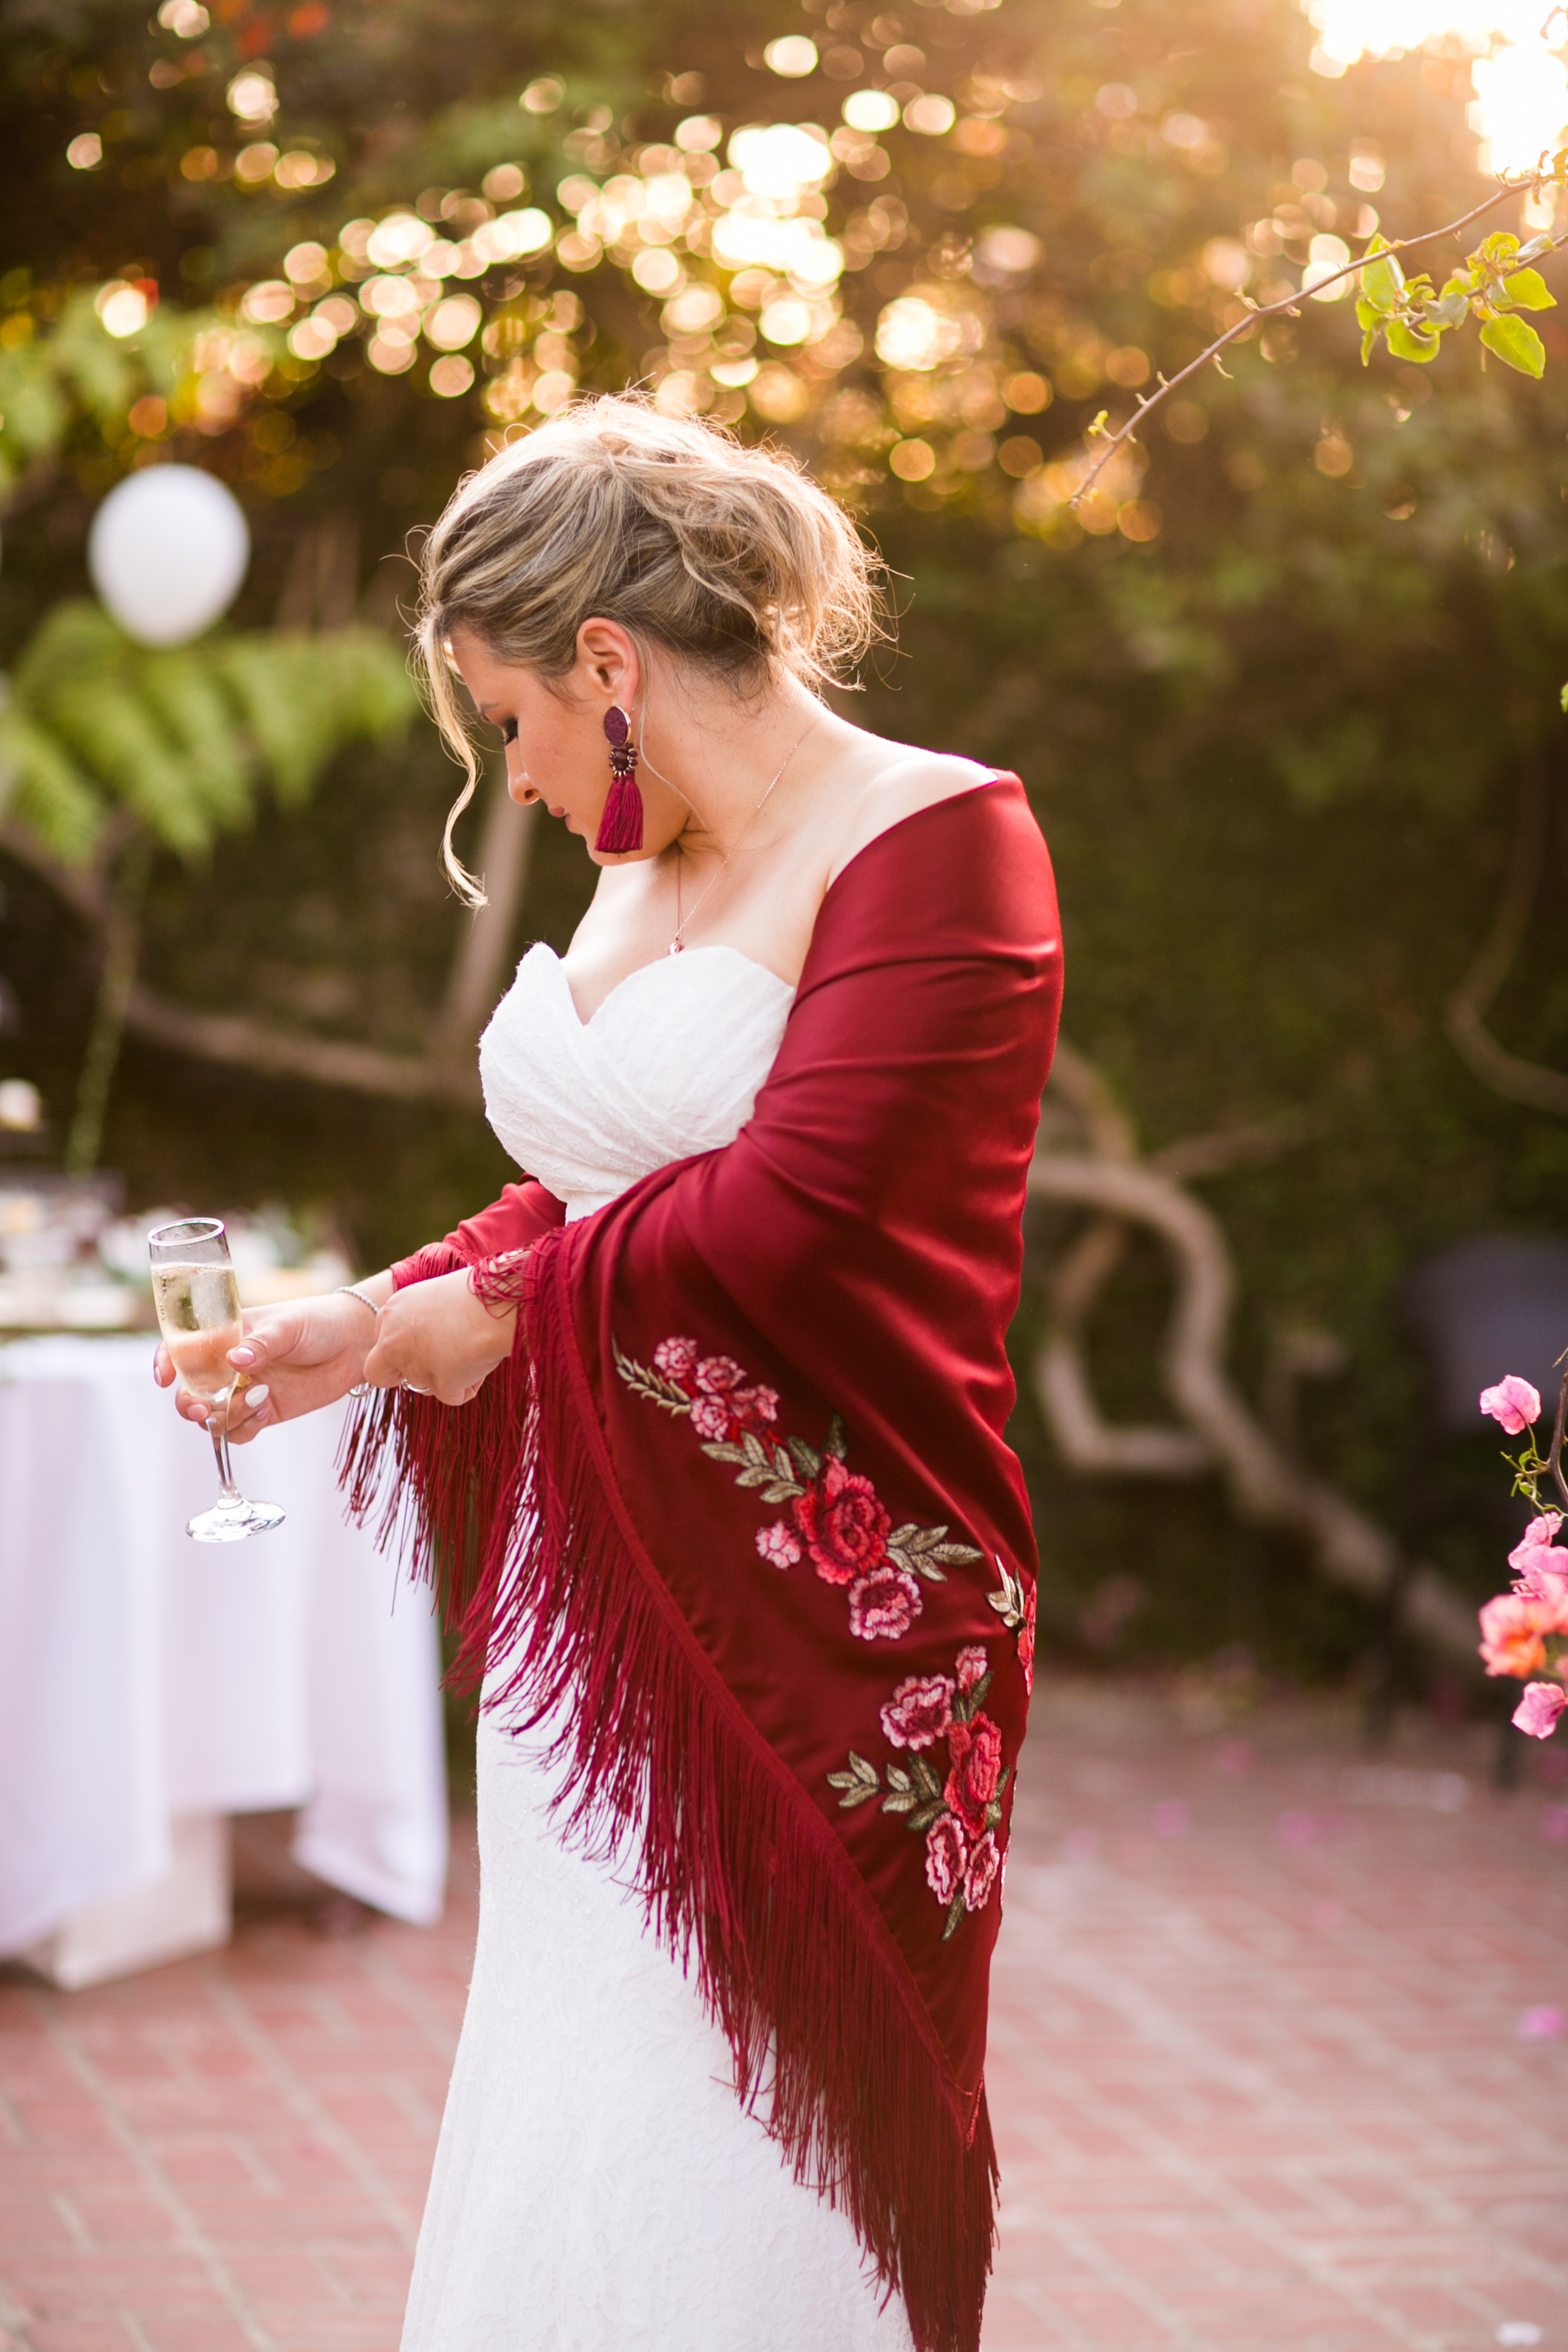 19-2019-May-wedding-ana-web.jpg